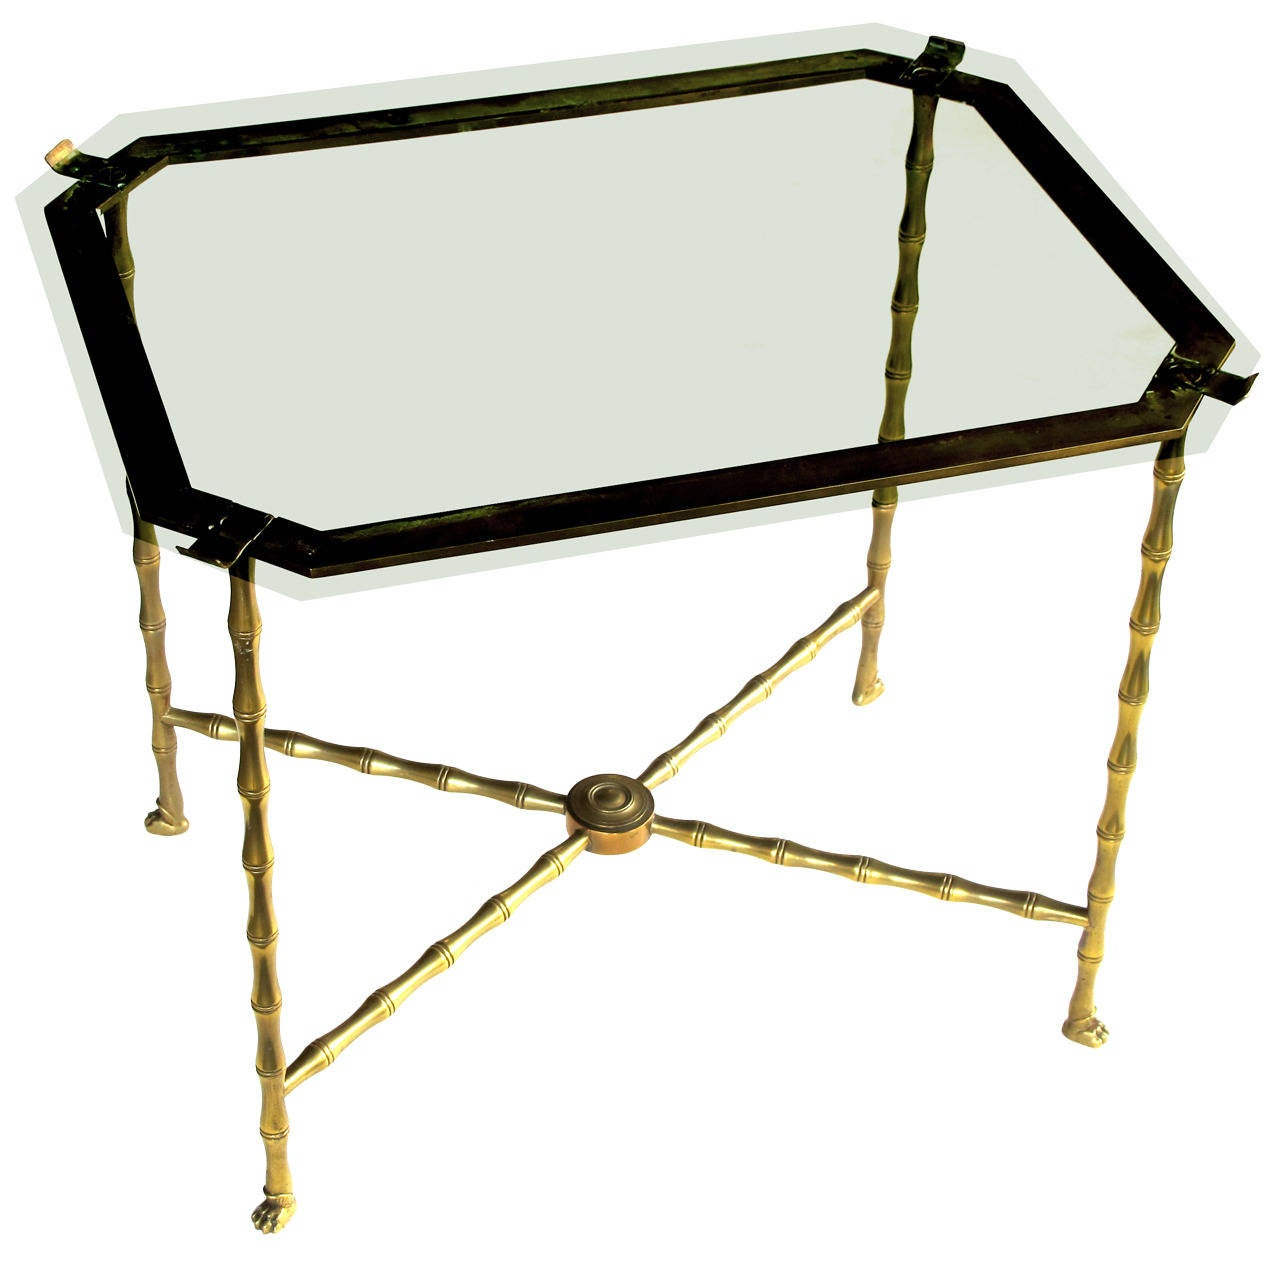 Stylish french 1940s faux bamboo brass side table by for Bamboo side table